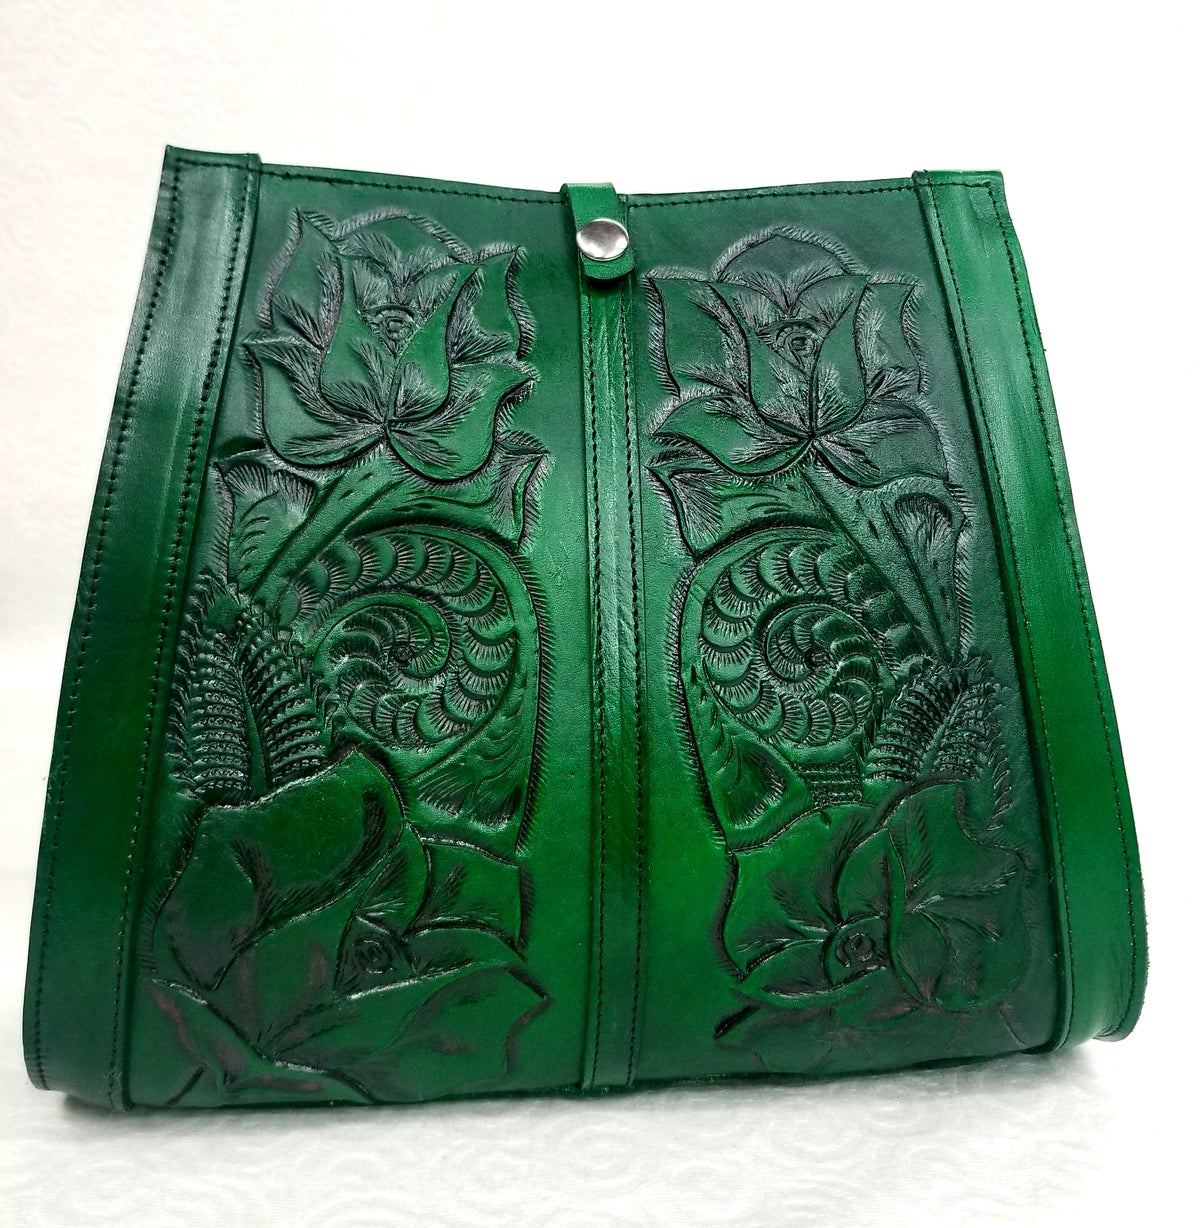 Image of Green Colored Hand-Tooled Leather Tote Bag